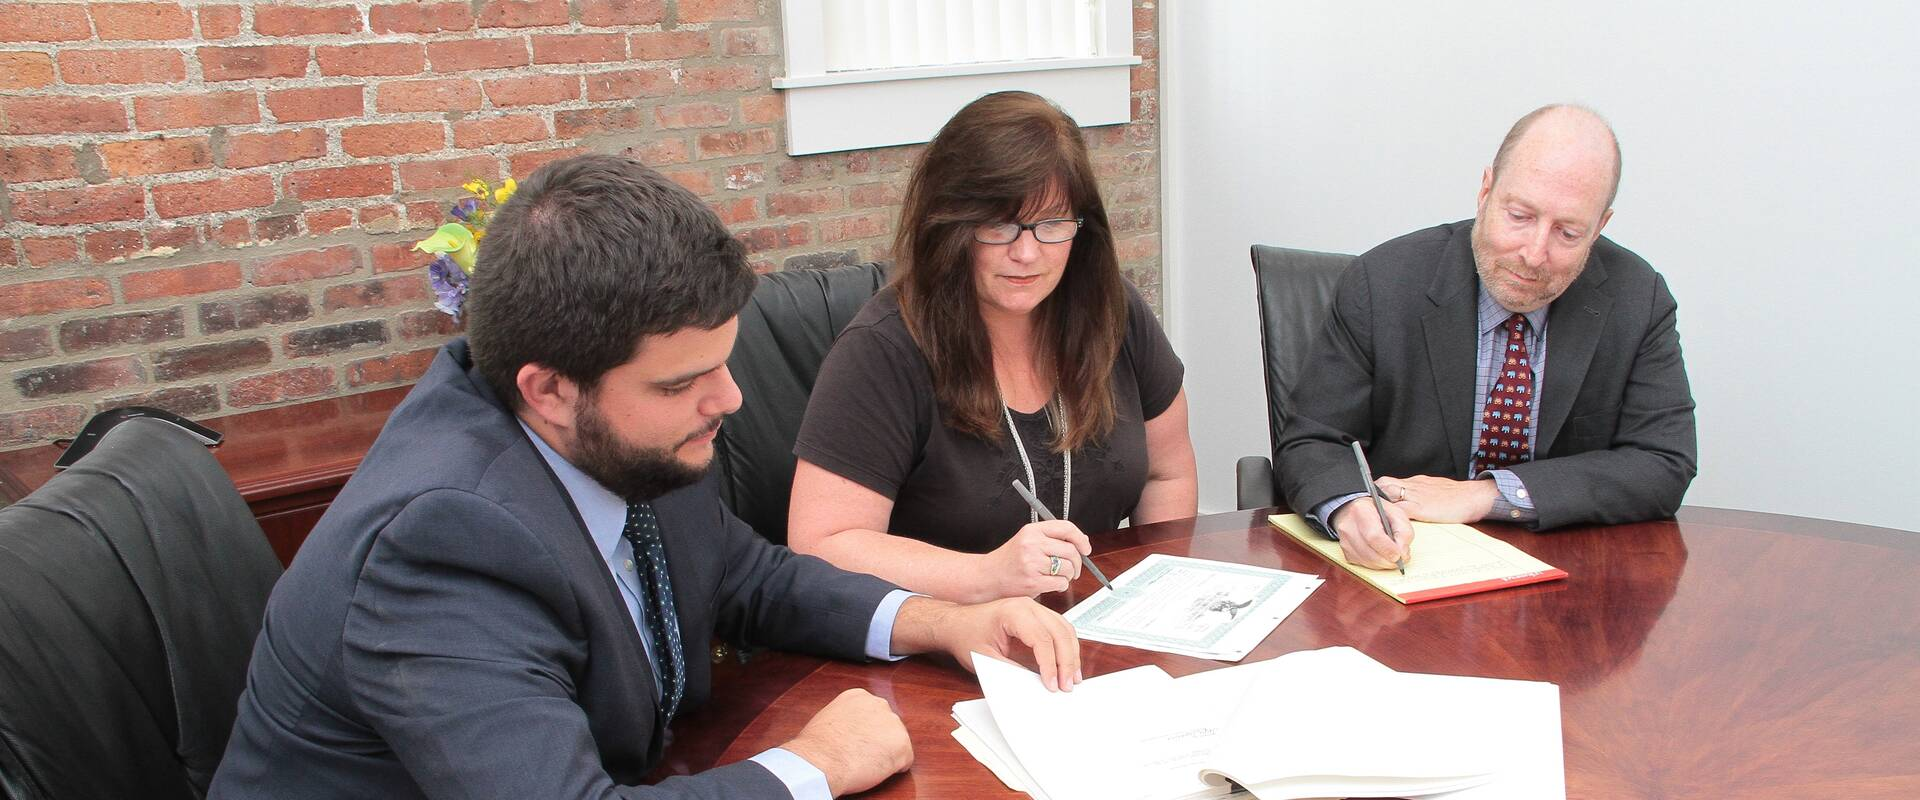 Newburgh Commercial Real Estate Lawyers